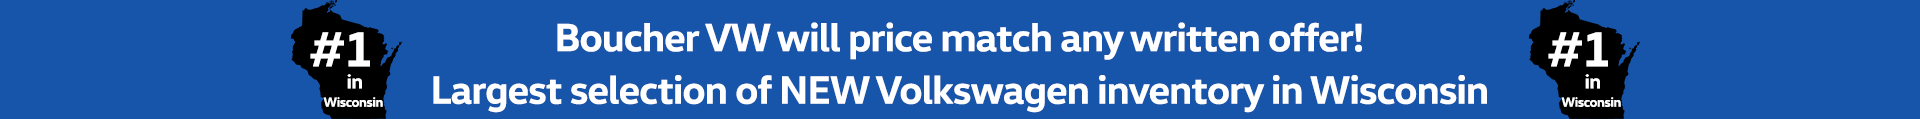 Boucher VW will price match any written offer!